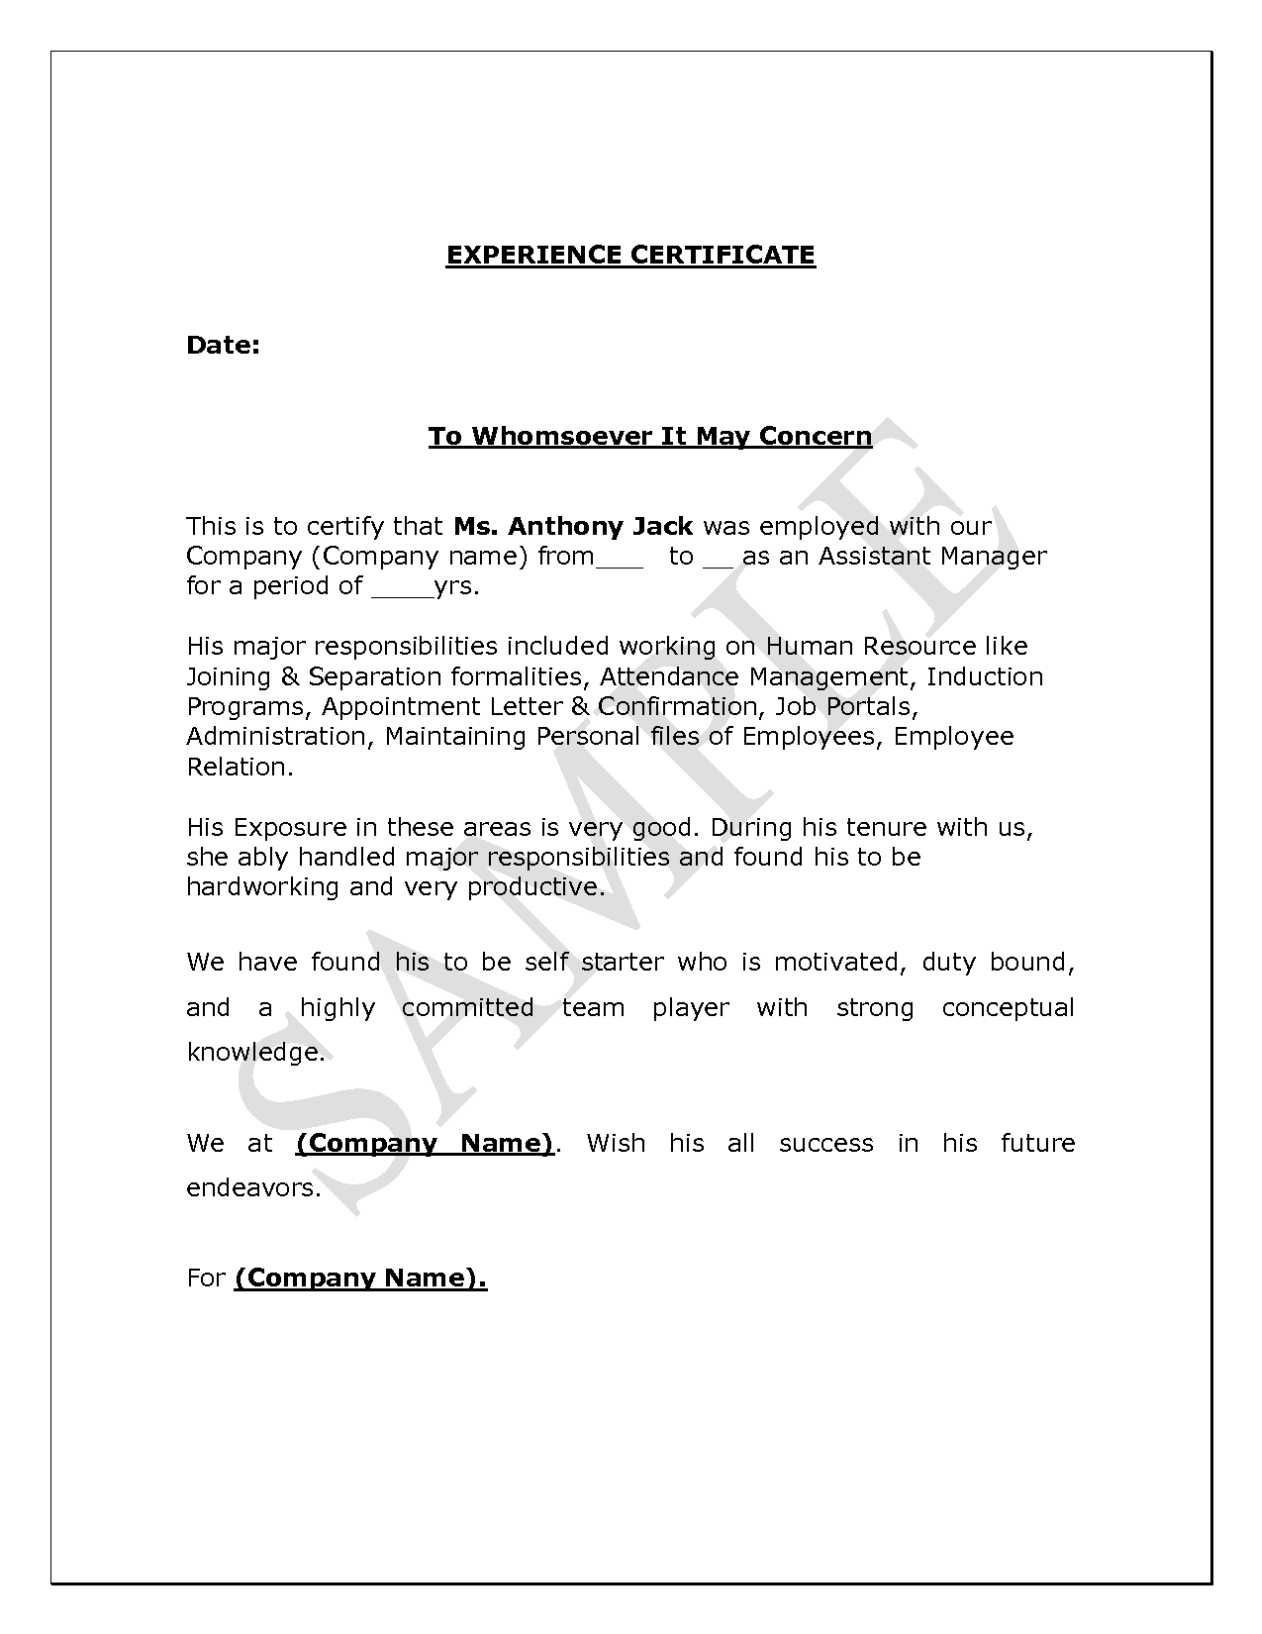 Letter Of Separation From Employer Template - Certificate Employment Sample In the Philippines Best